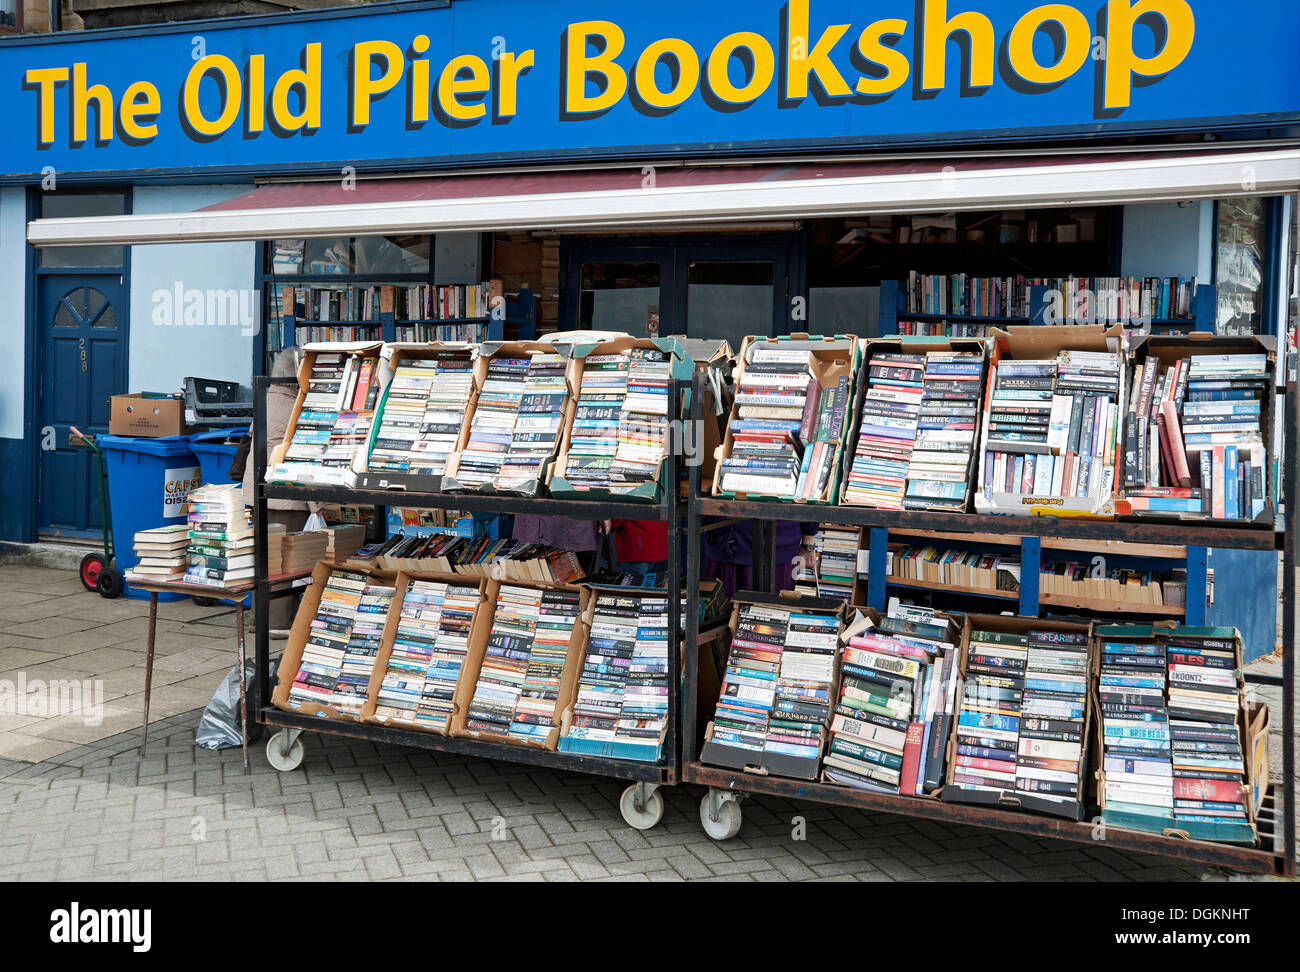 Racks of books outside a secondhand bookshop in Morecambe. Stock Photo